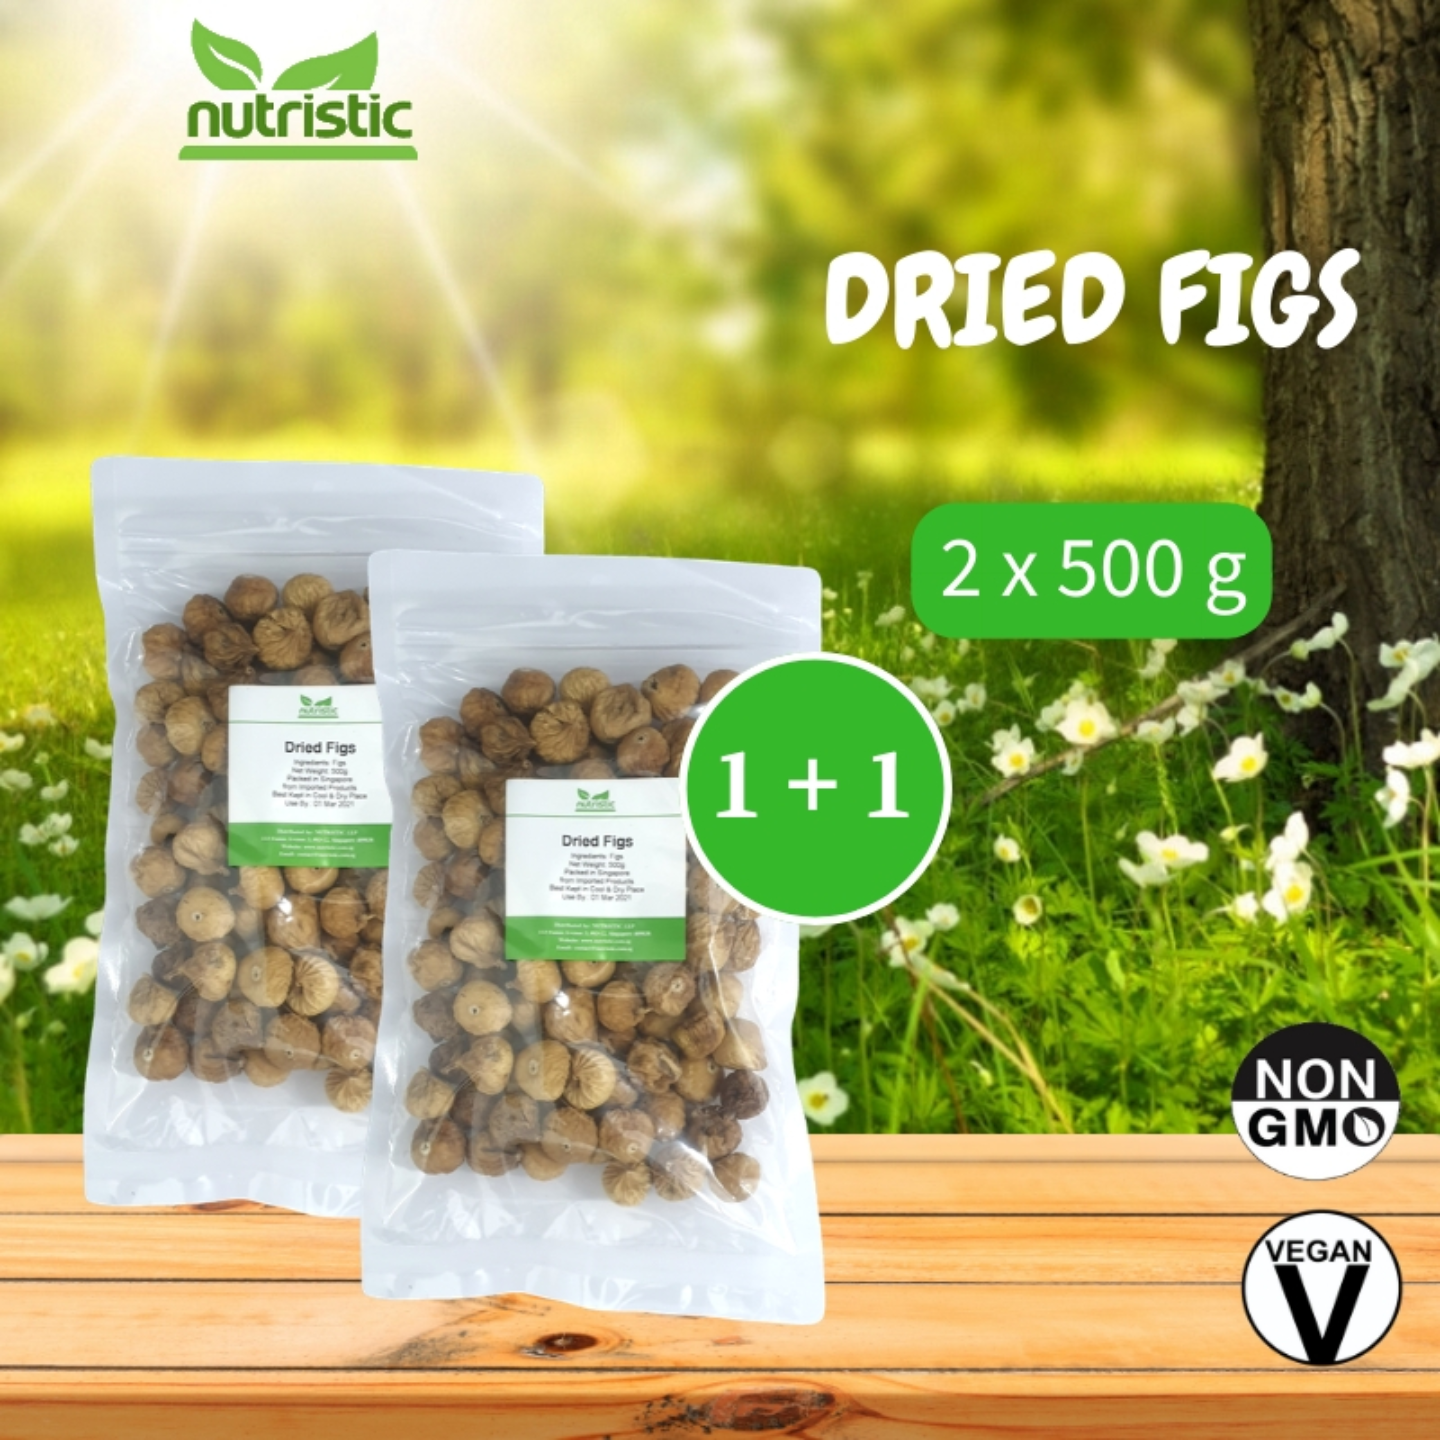 Dried Figs 500g x2 - Value Bundle 1+1